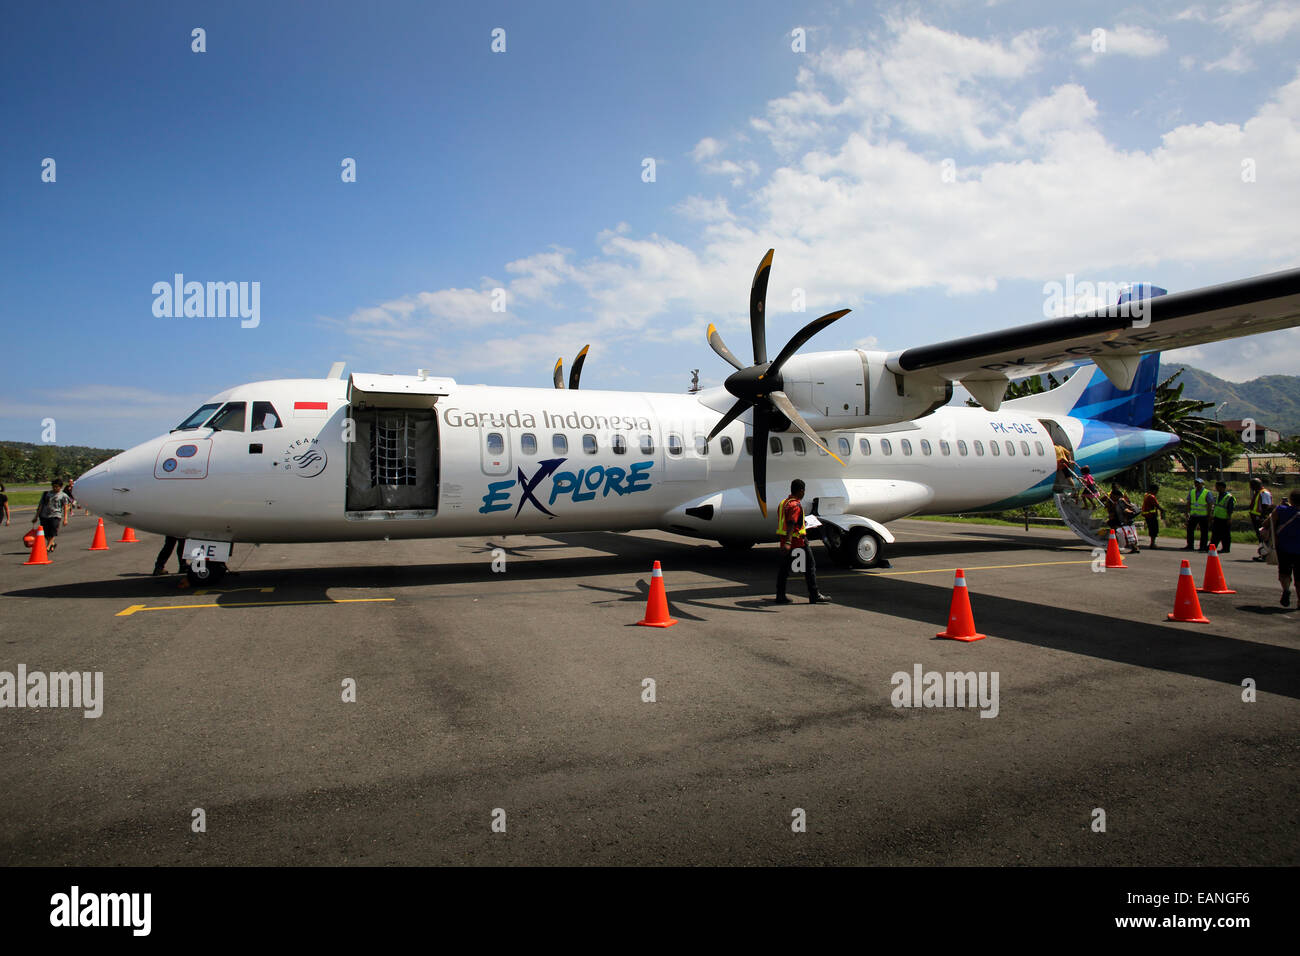 Garuda Indonesia propeller airplane on the tarmac at Labuan Bajo airport on Flores Island, Indonesia - Stock Image